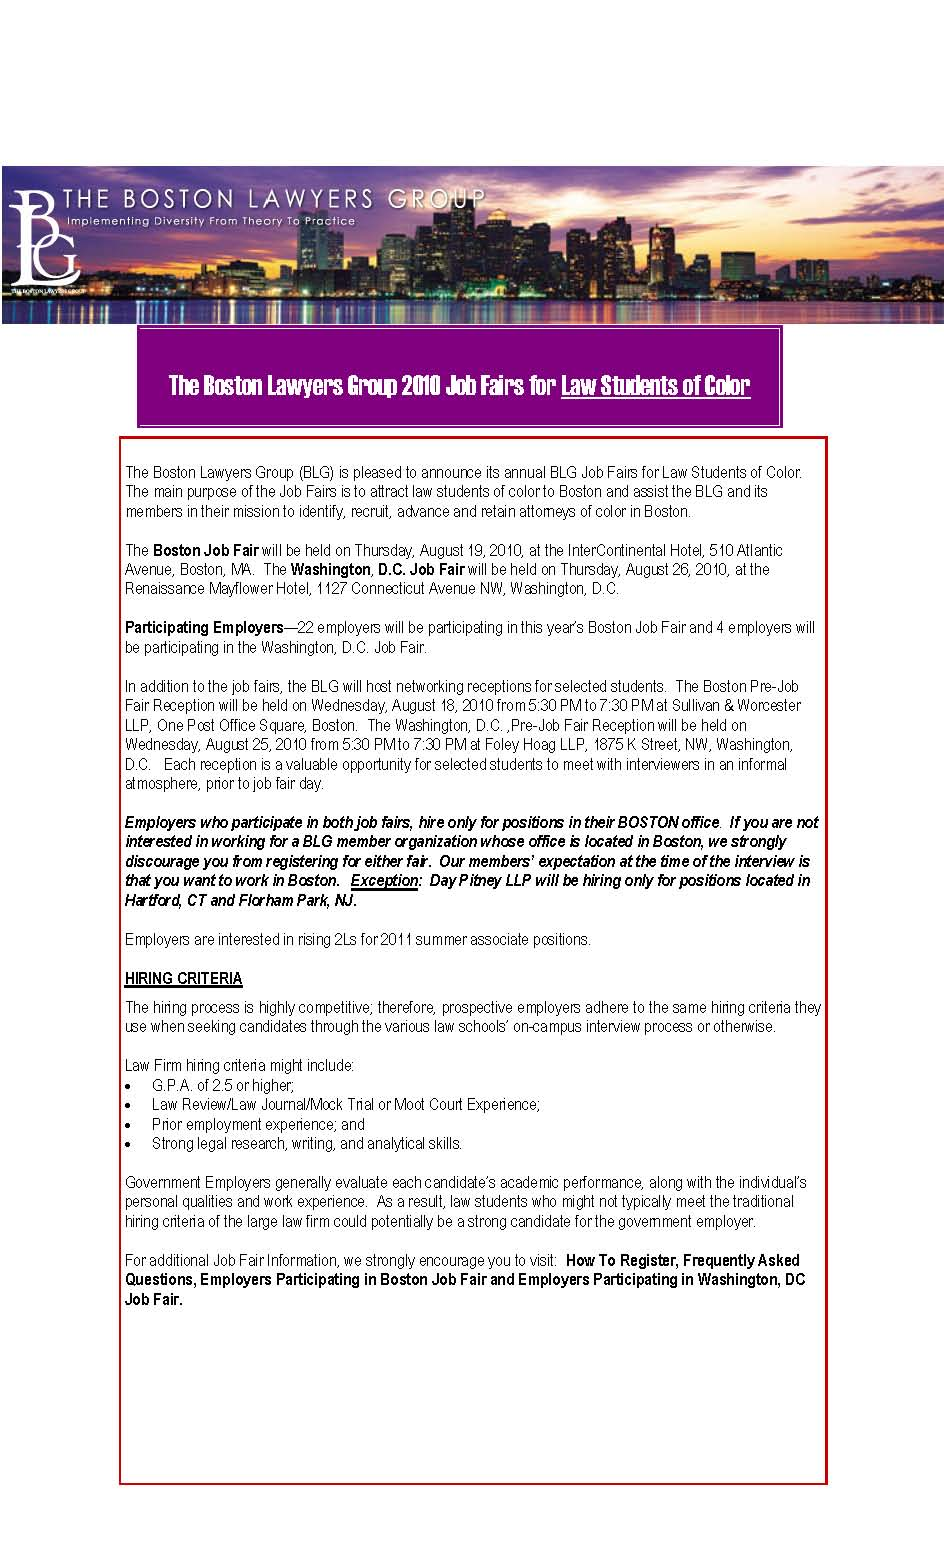 The Boston Lawyers Group 2010 Job Fairs for Law Students of